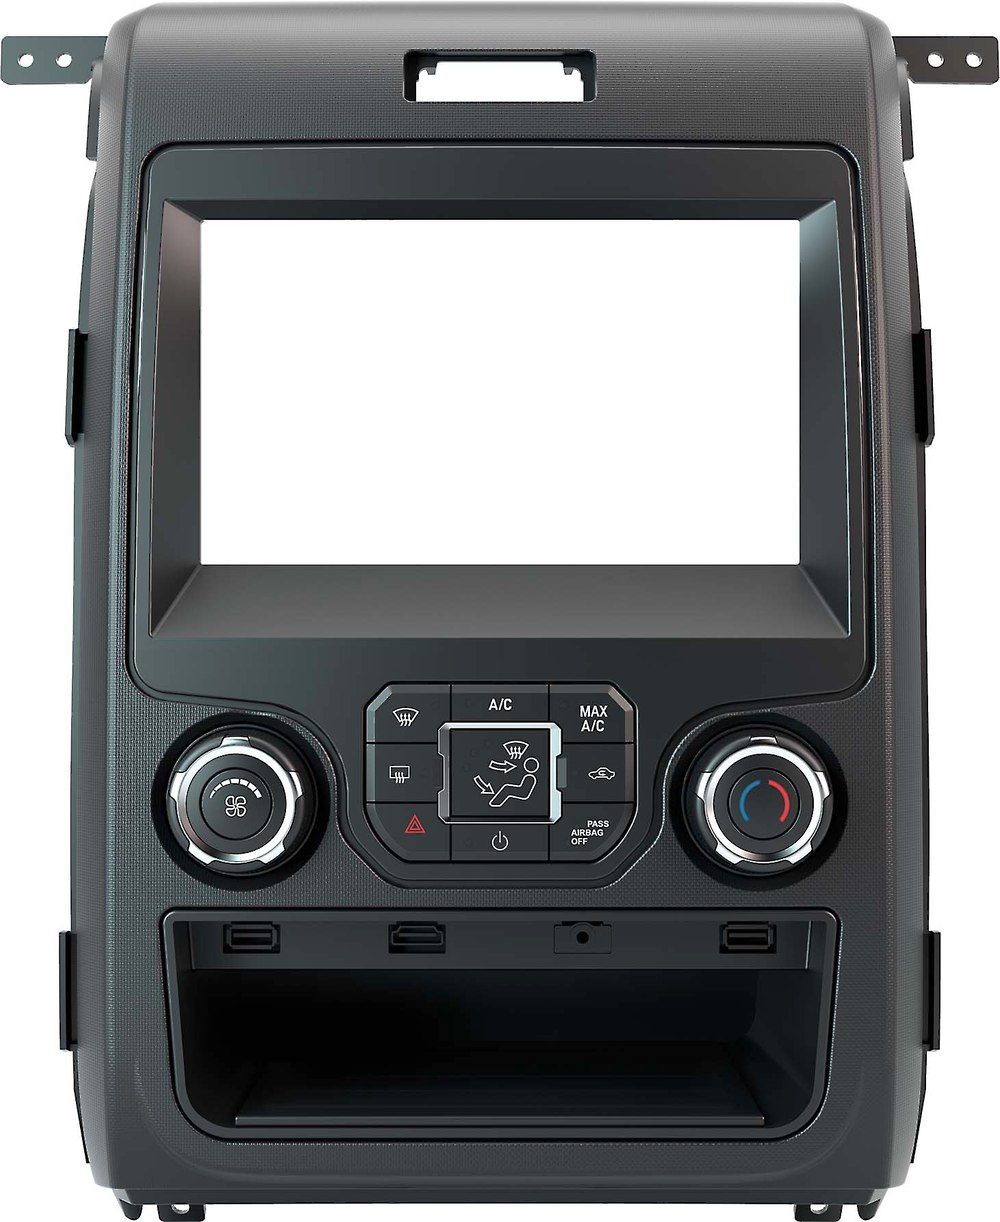 x794K150 F idatalink k150 dash kit install a new car stereo in select 2013 14 Dash Kit for F150 at bayanpartner.co